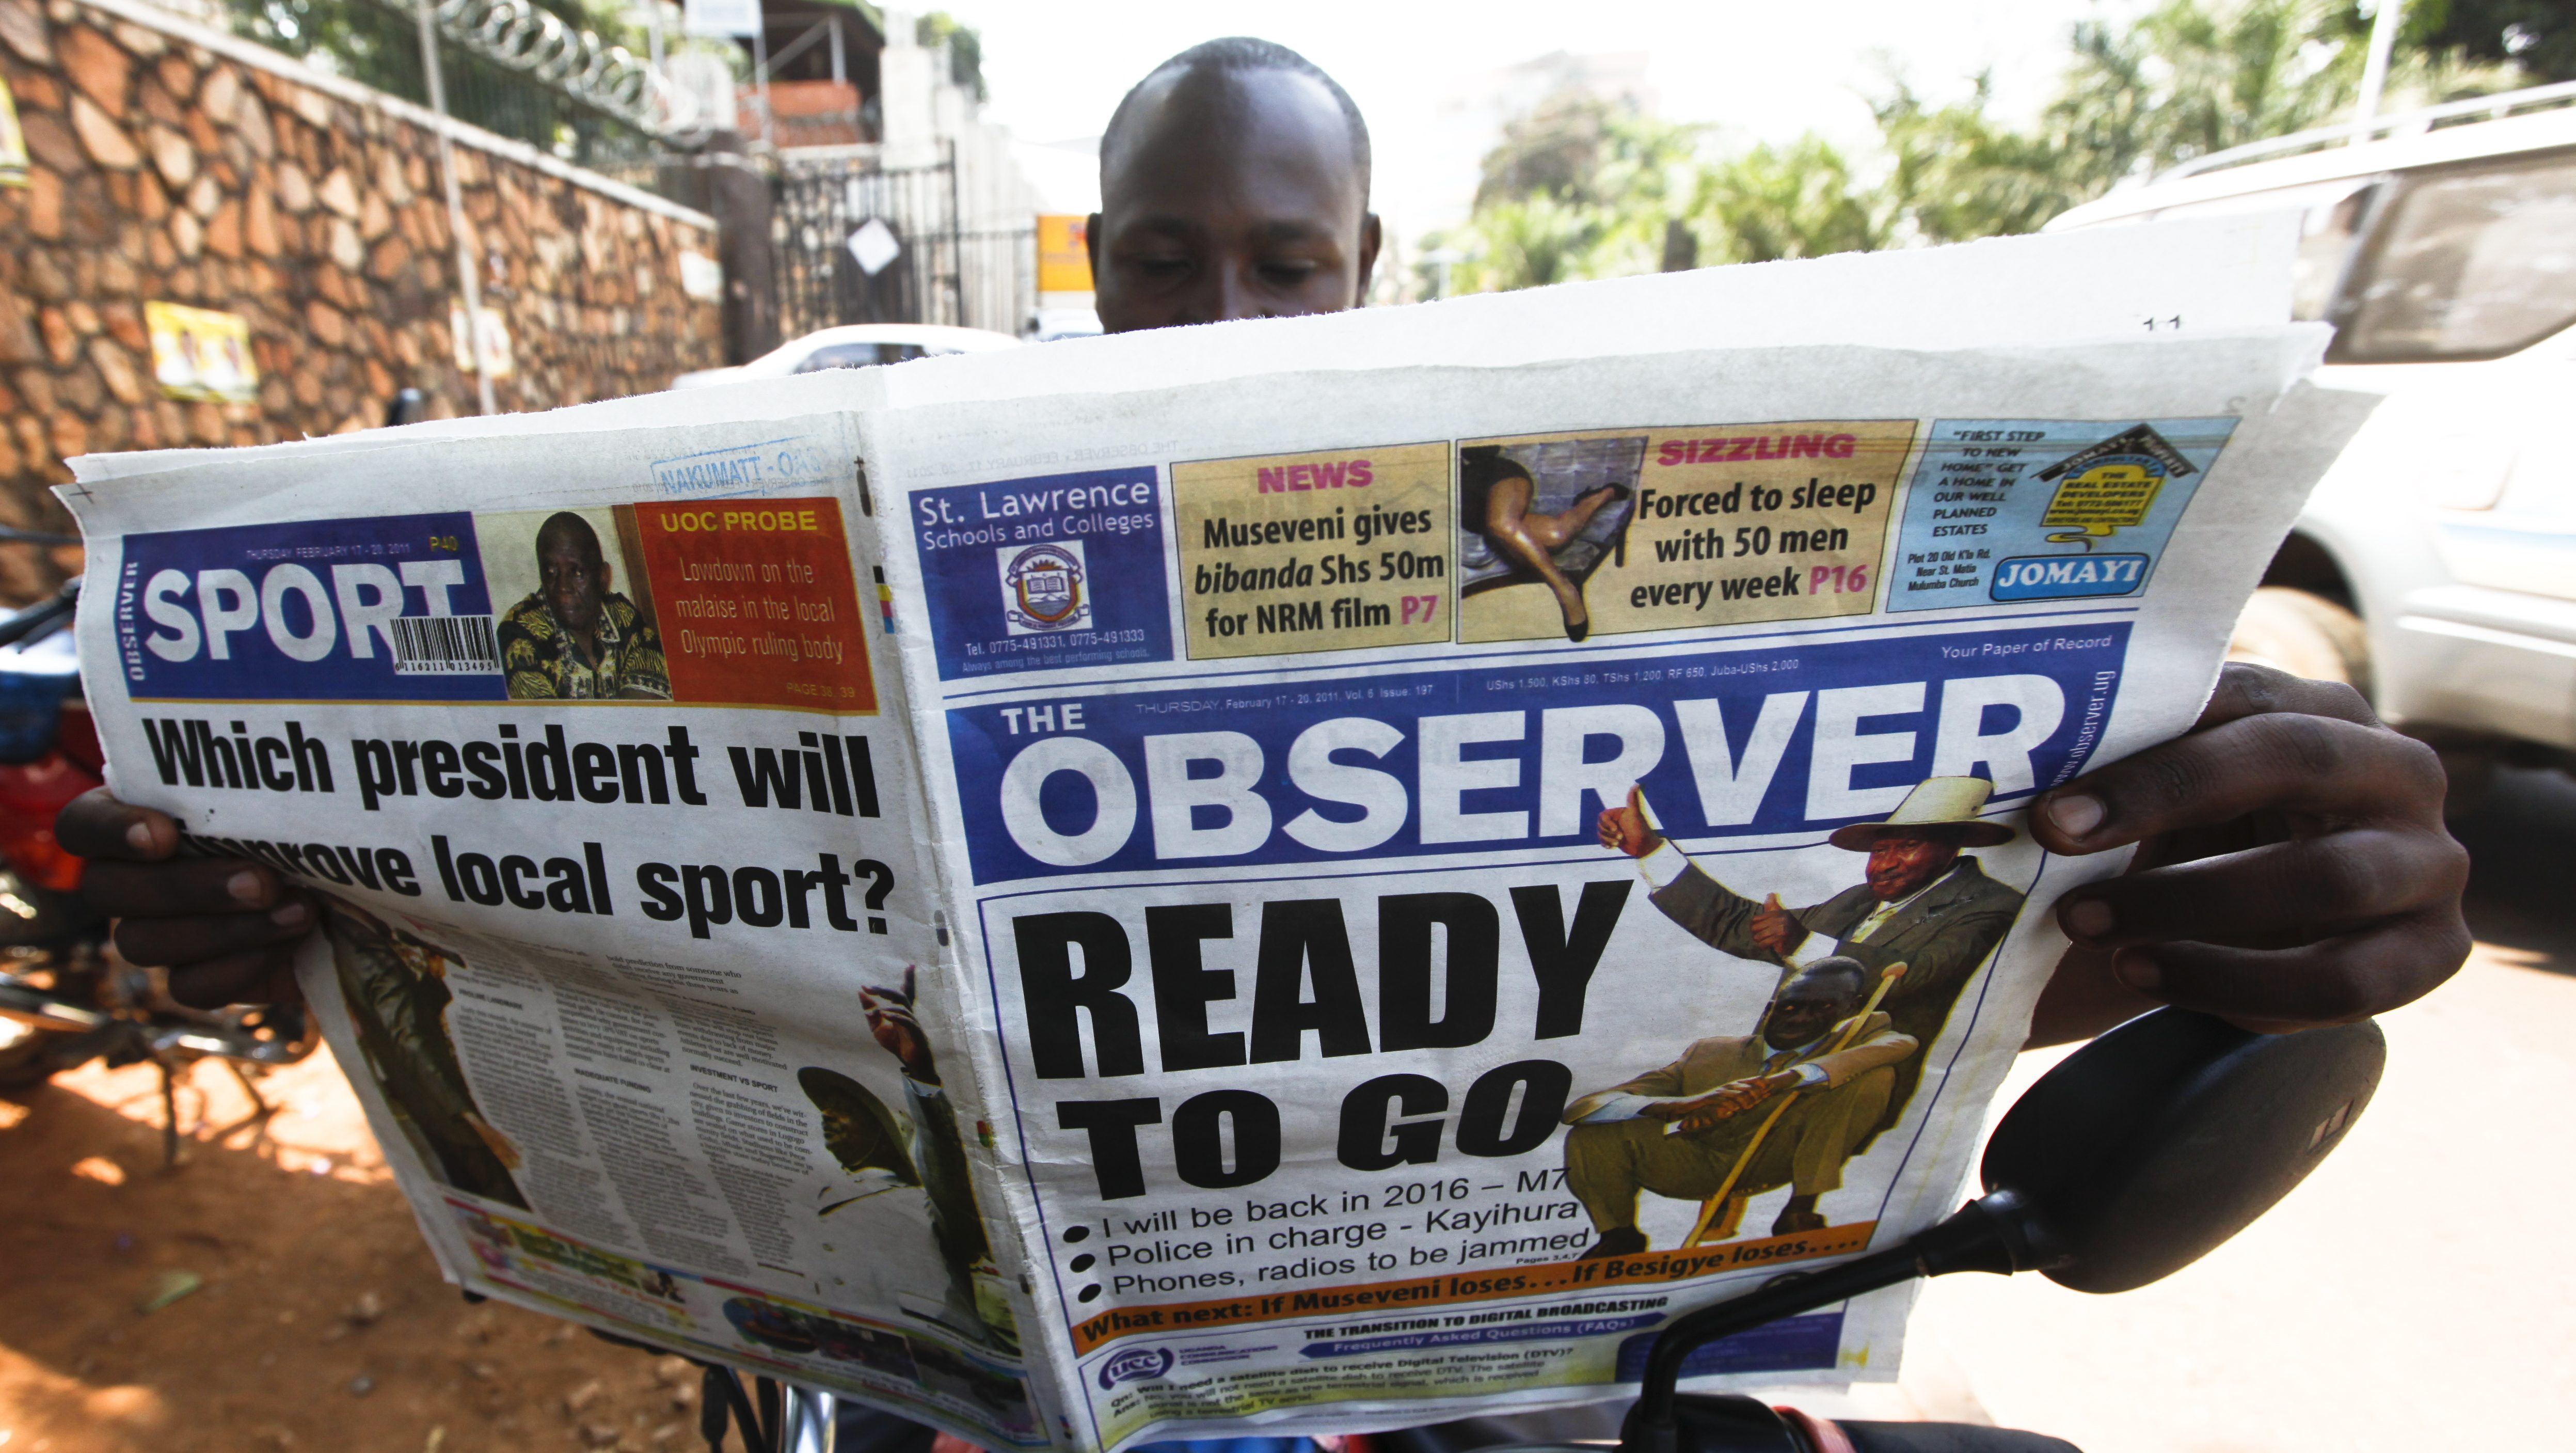 A 'boda boda' driver reads a newspaper featuring a presidential election article on its front page in downtown Kampala, Uganda, 17 February 2011, a day before the voting day. The leader of National Resistance Movement (NRM), President Yoweri Museveni, who is widely expected to win the poll, has dismissed the possibility of an Egypt-inspired revolution in his country, responding to threats made by his main opponent Kizza Besigye, the leader of the main opposition Forum for Democratic Change (FDC). Museveni said the government will arrest those who try to incite protests. Besigye, who is challenging Museveni for the third time, is considered to be the only one to pose the real challenge to the incumbent. 13.8 million Ugandans will vote on 18 February to choose their president.